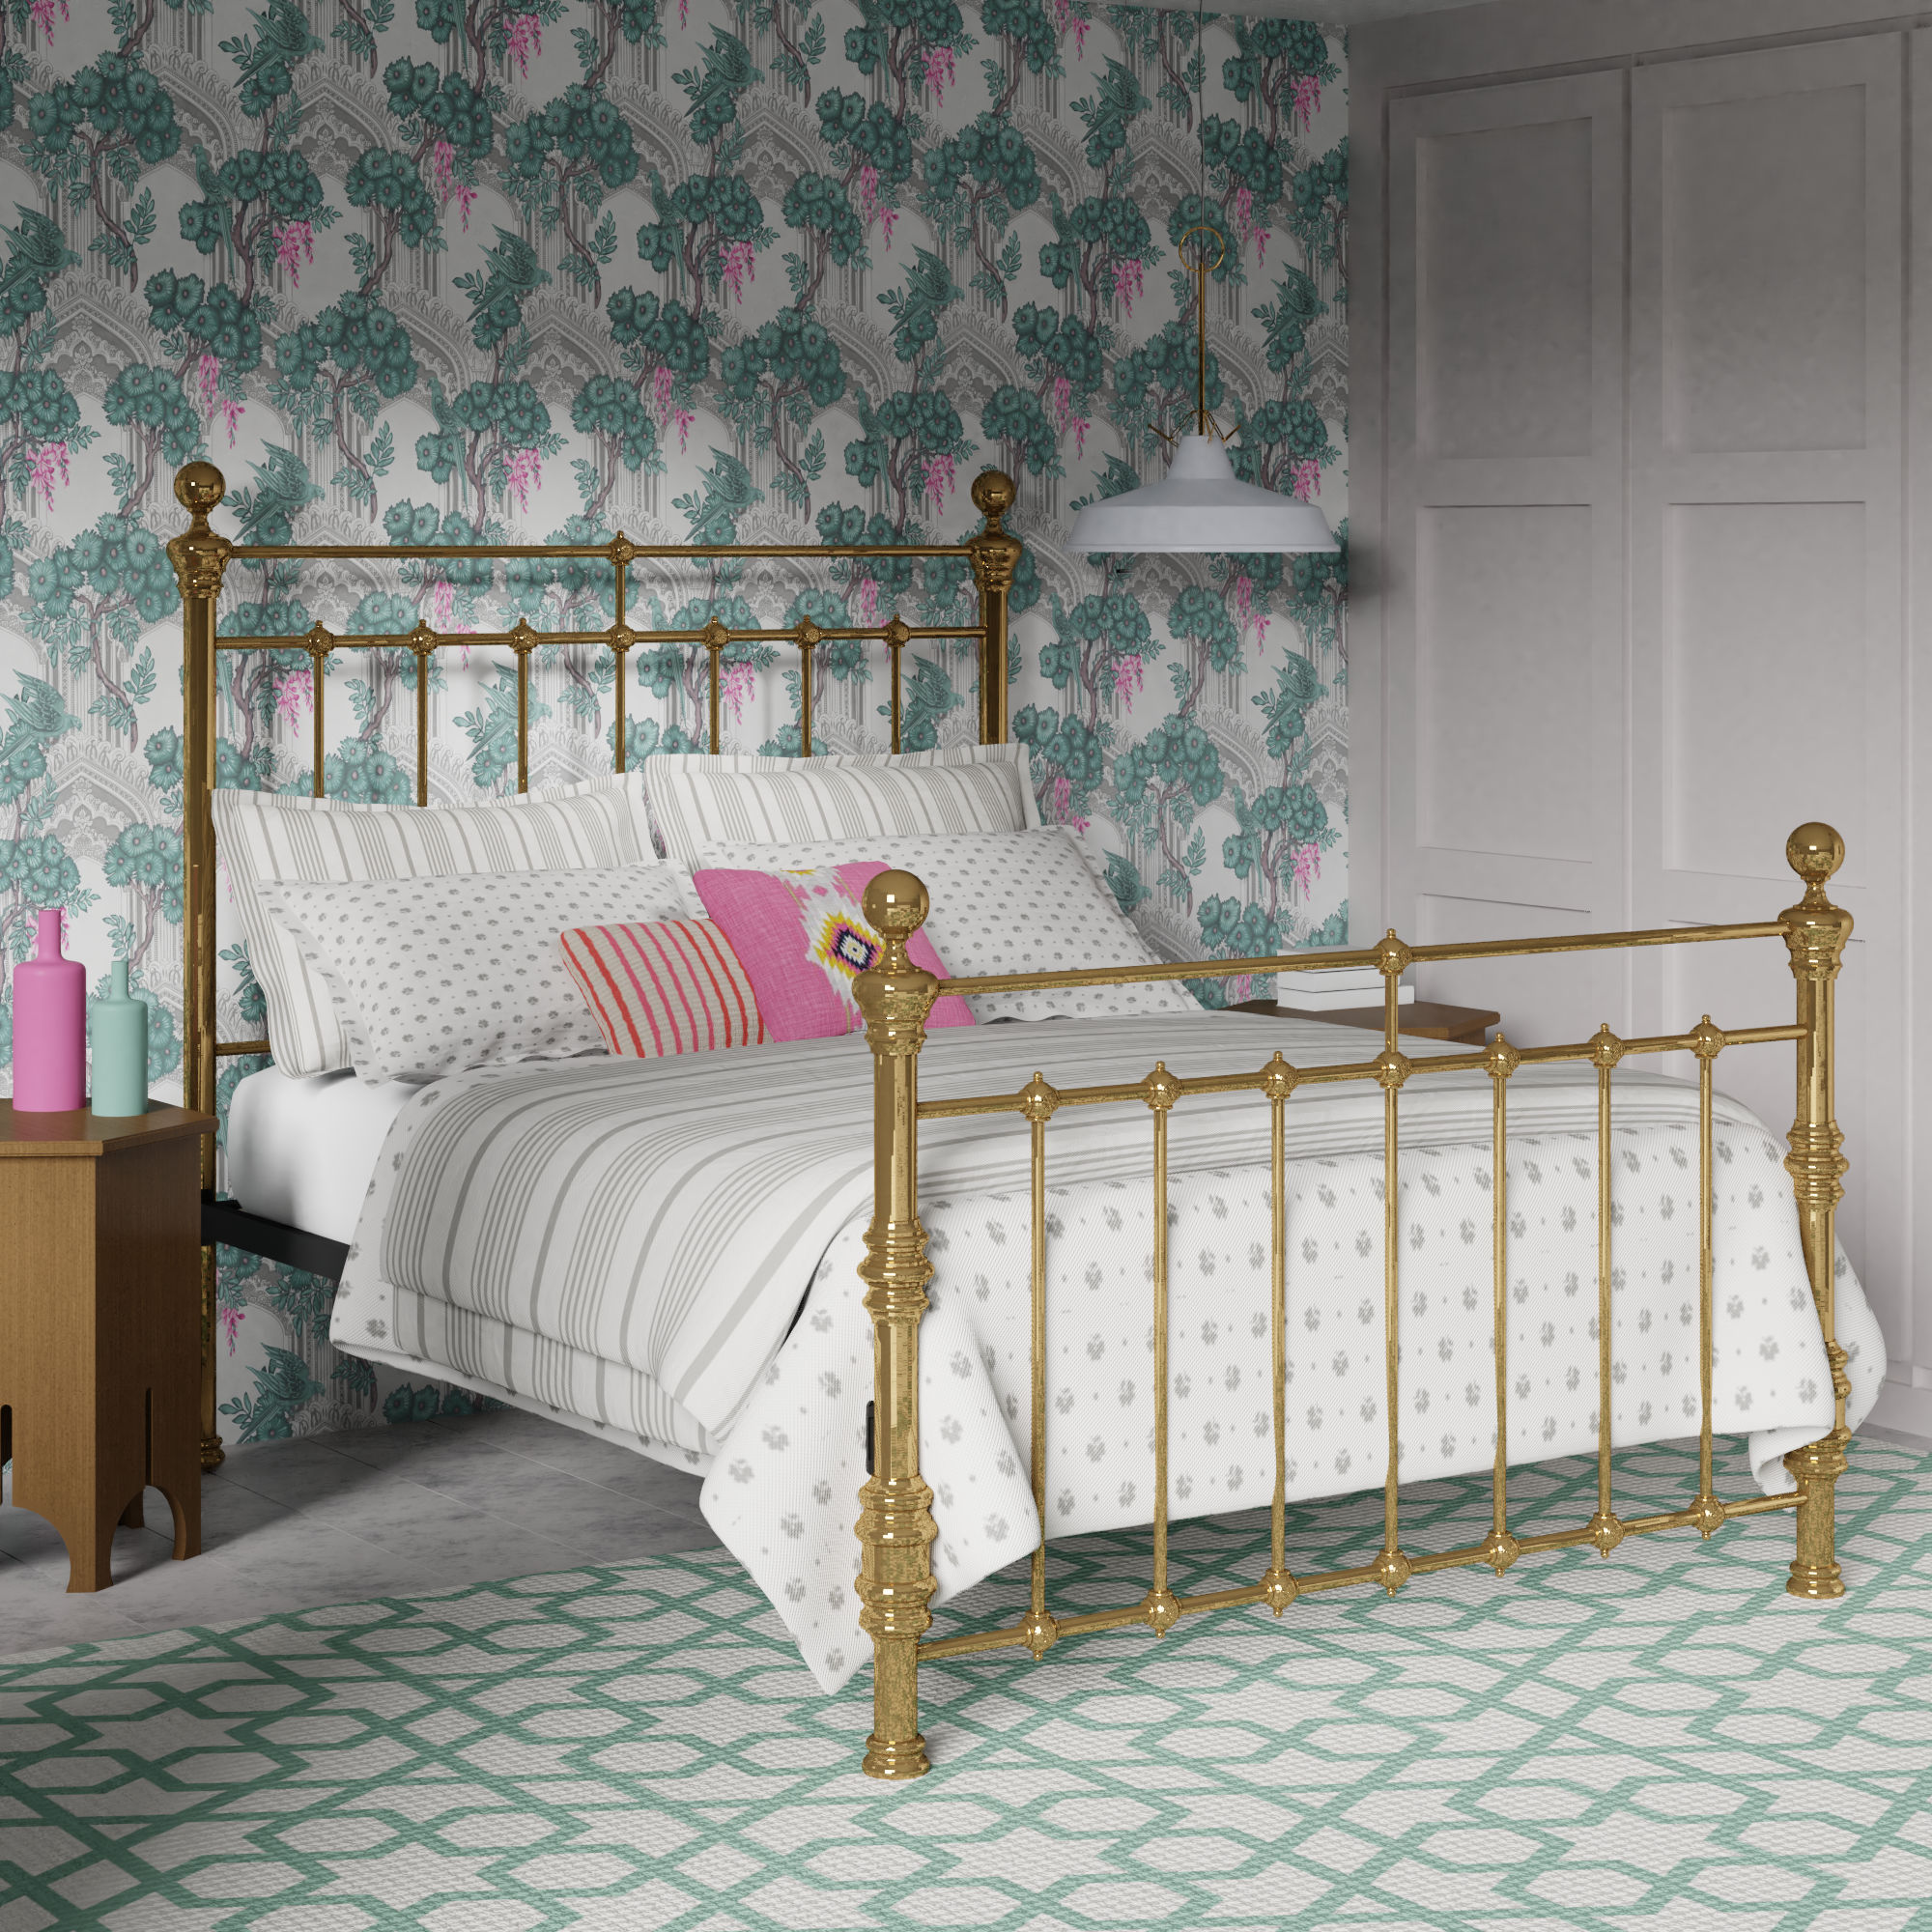 Waterford brass bed frame inspired by grandmillenial design